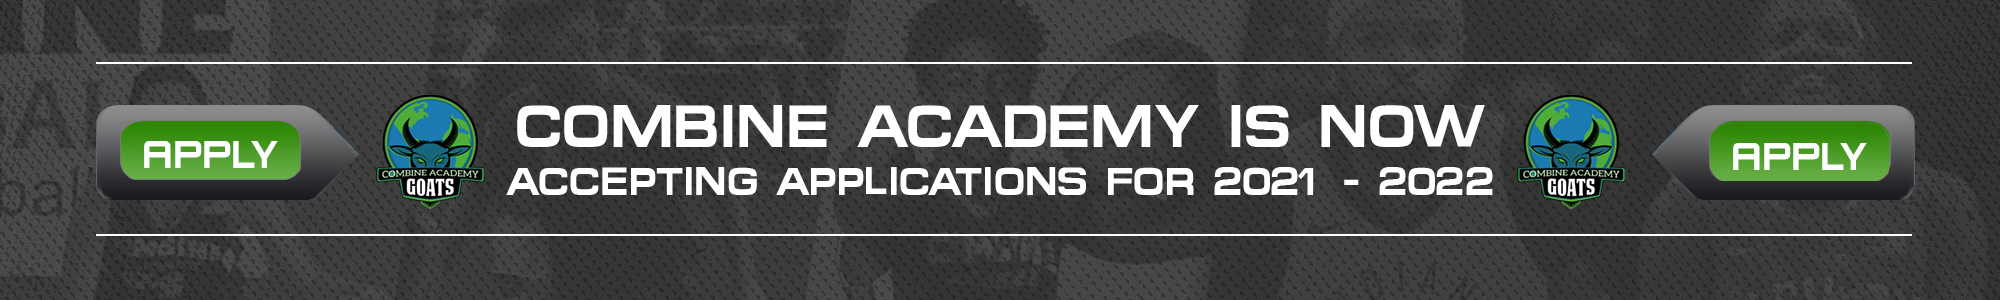 Combine Academy Accepting Application Banner